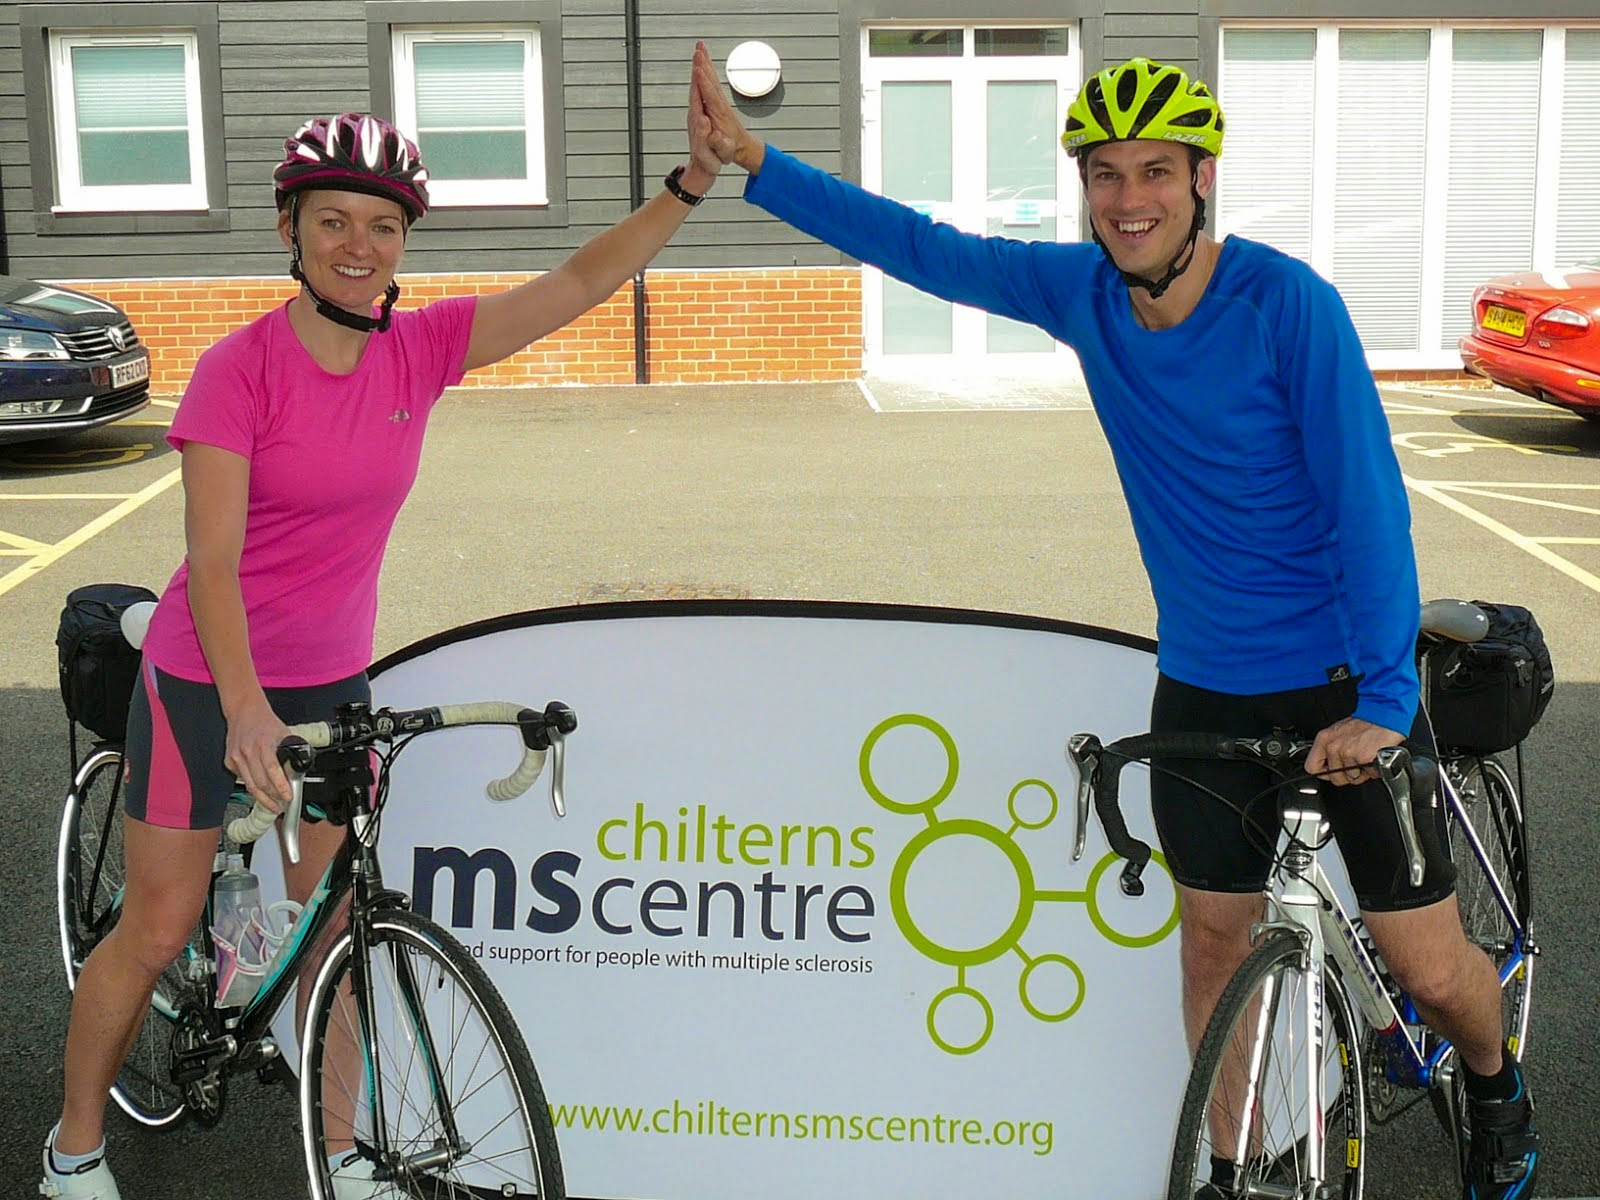 Raising money for the Chilterns MS Centre